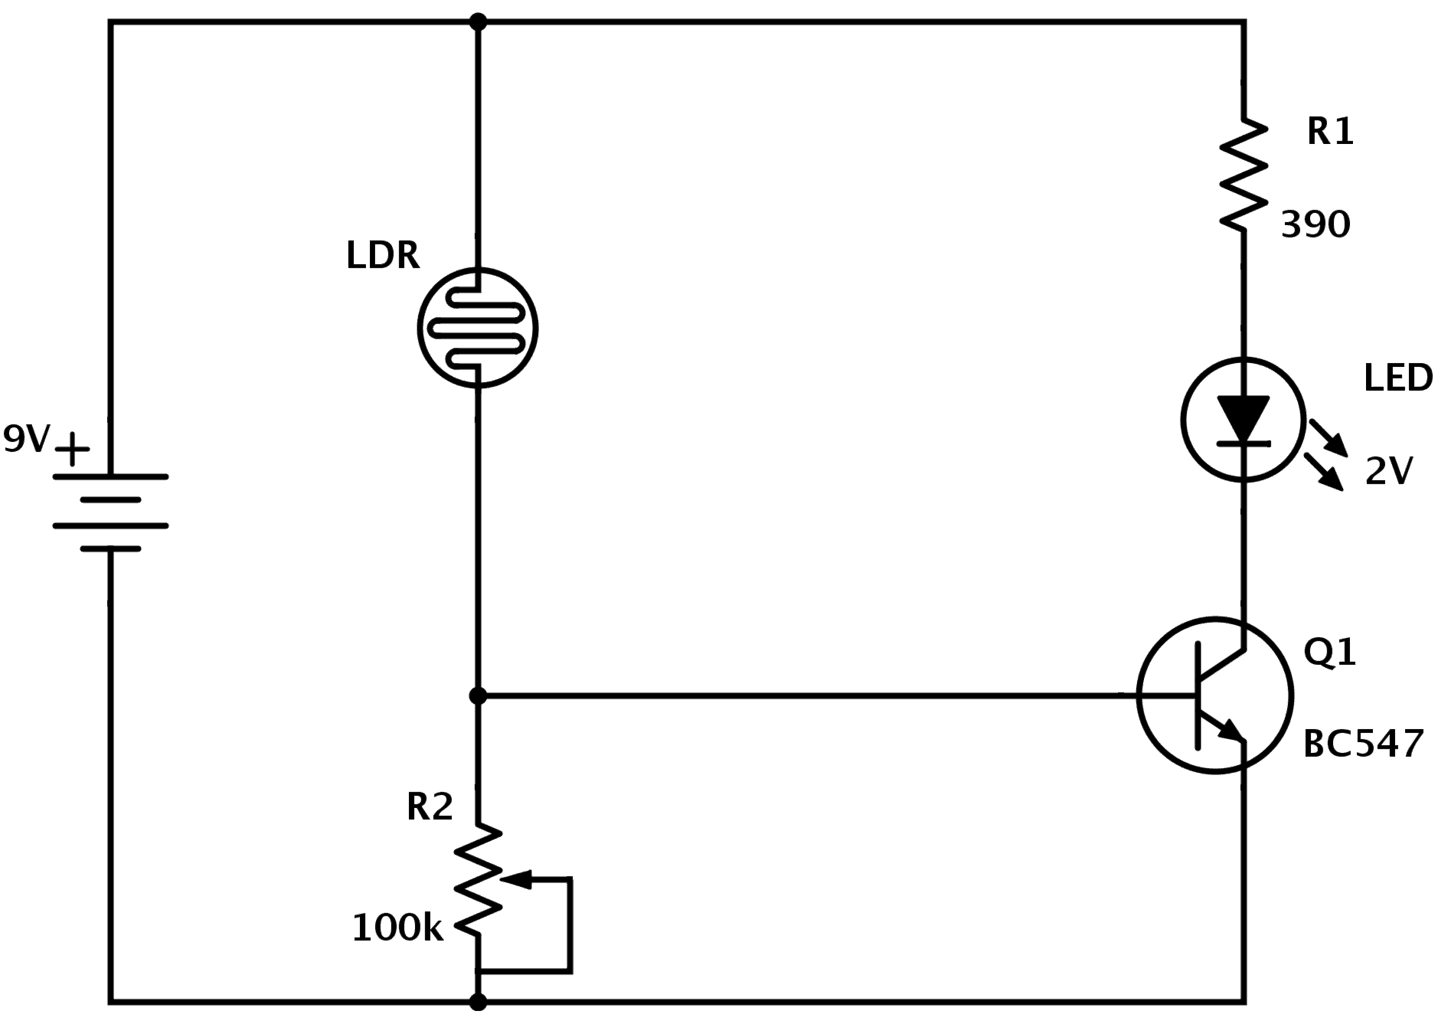 LDR circuit improved circuit diagram how to read and understand any schematic electronic circuit diagrams at gsmx.co